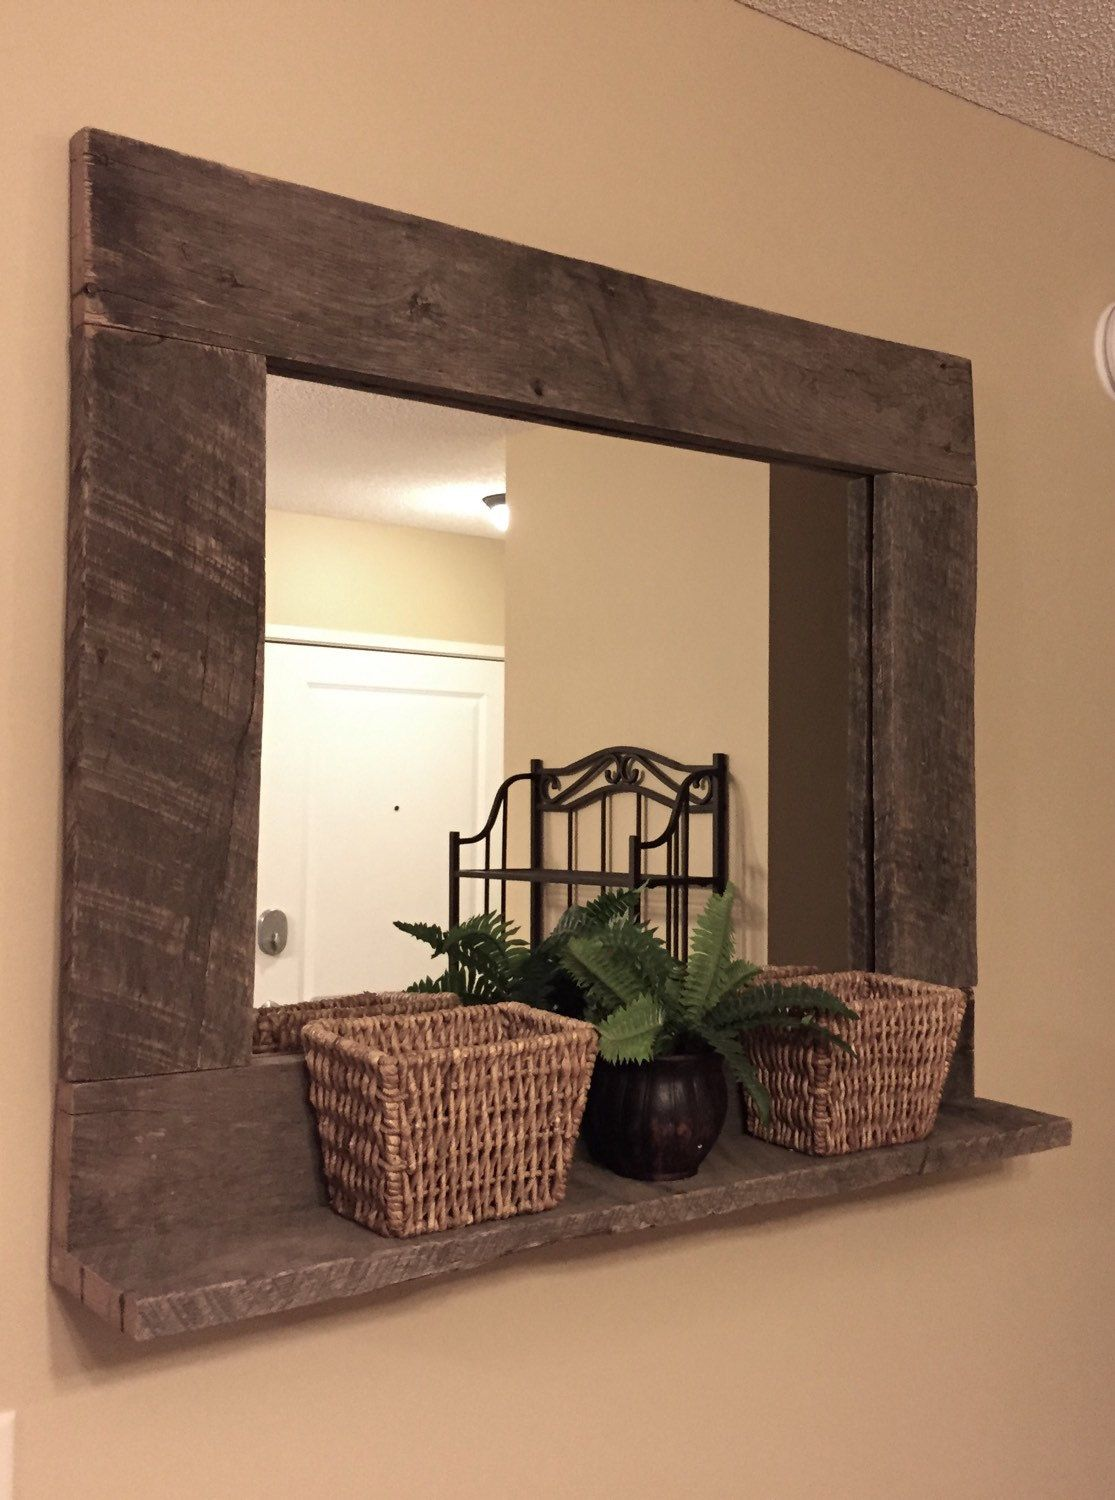 Rustic Wood Mirror Pallet Furniture Home Decor Large Wall Hanging With Shelf By